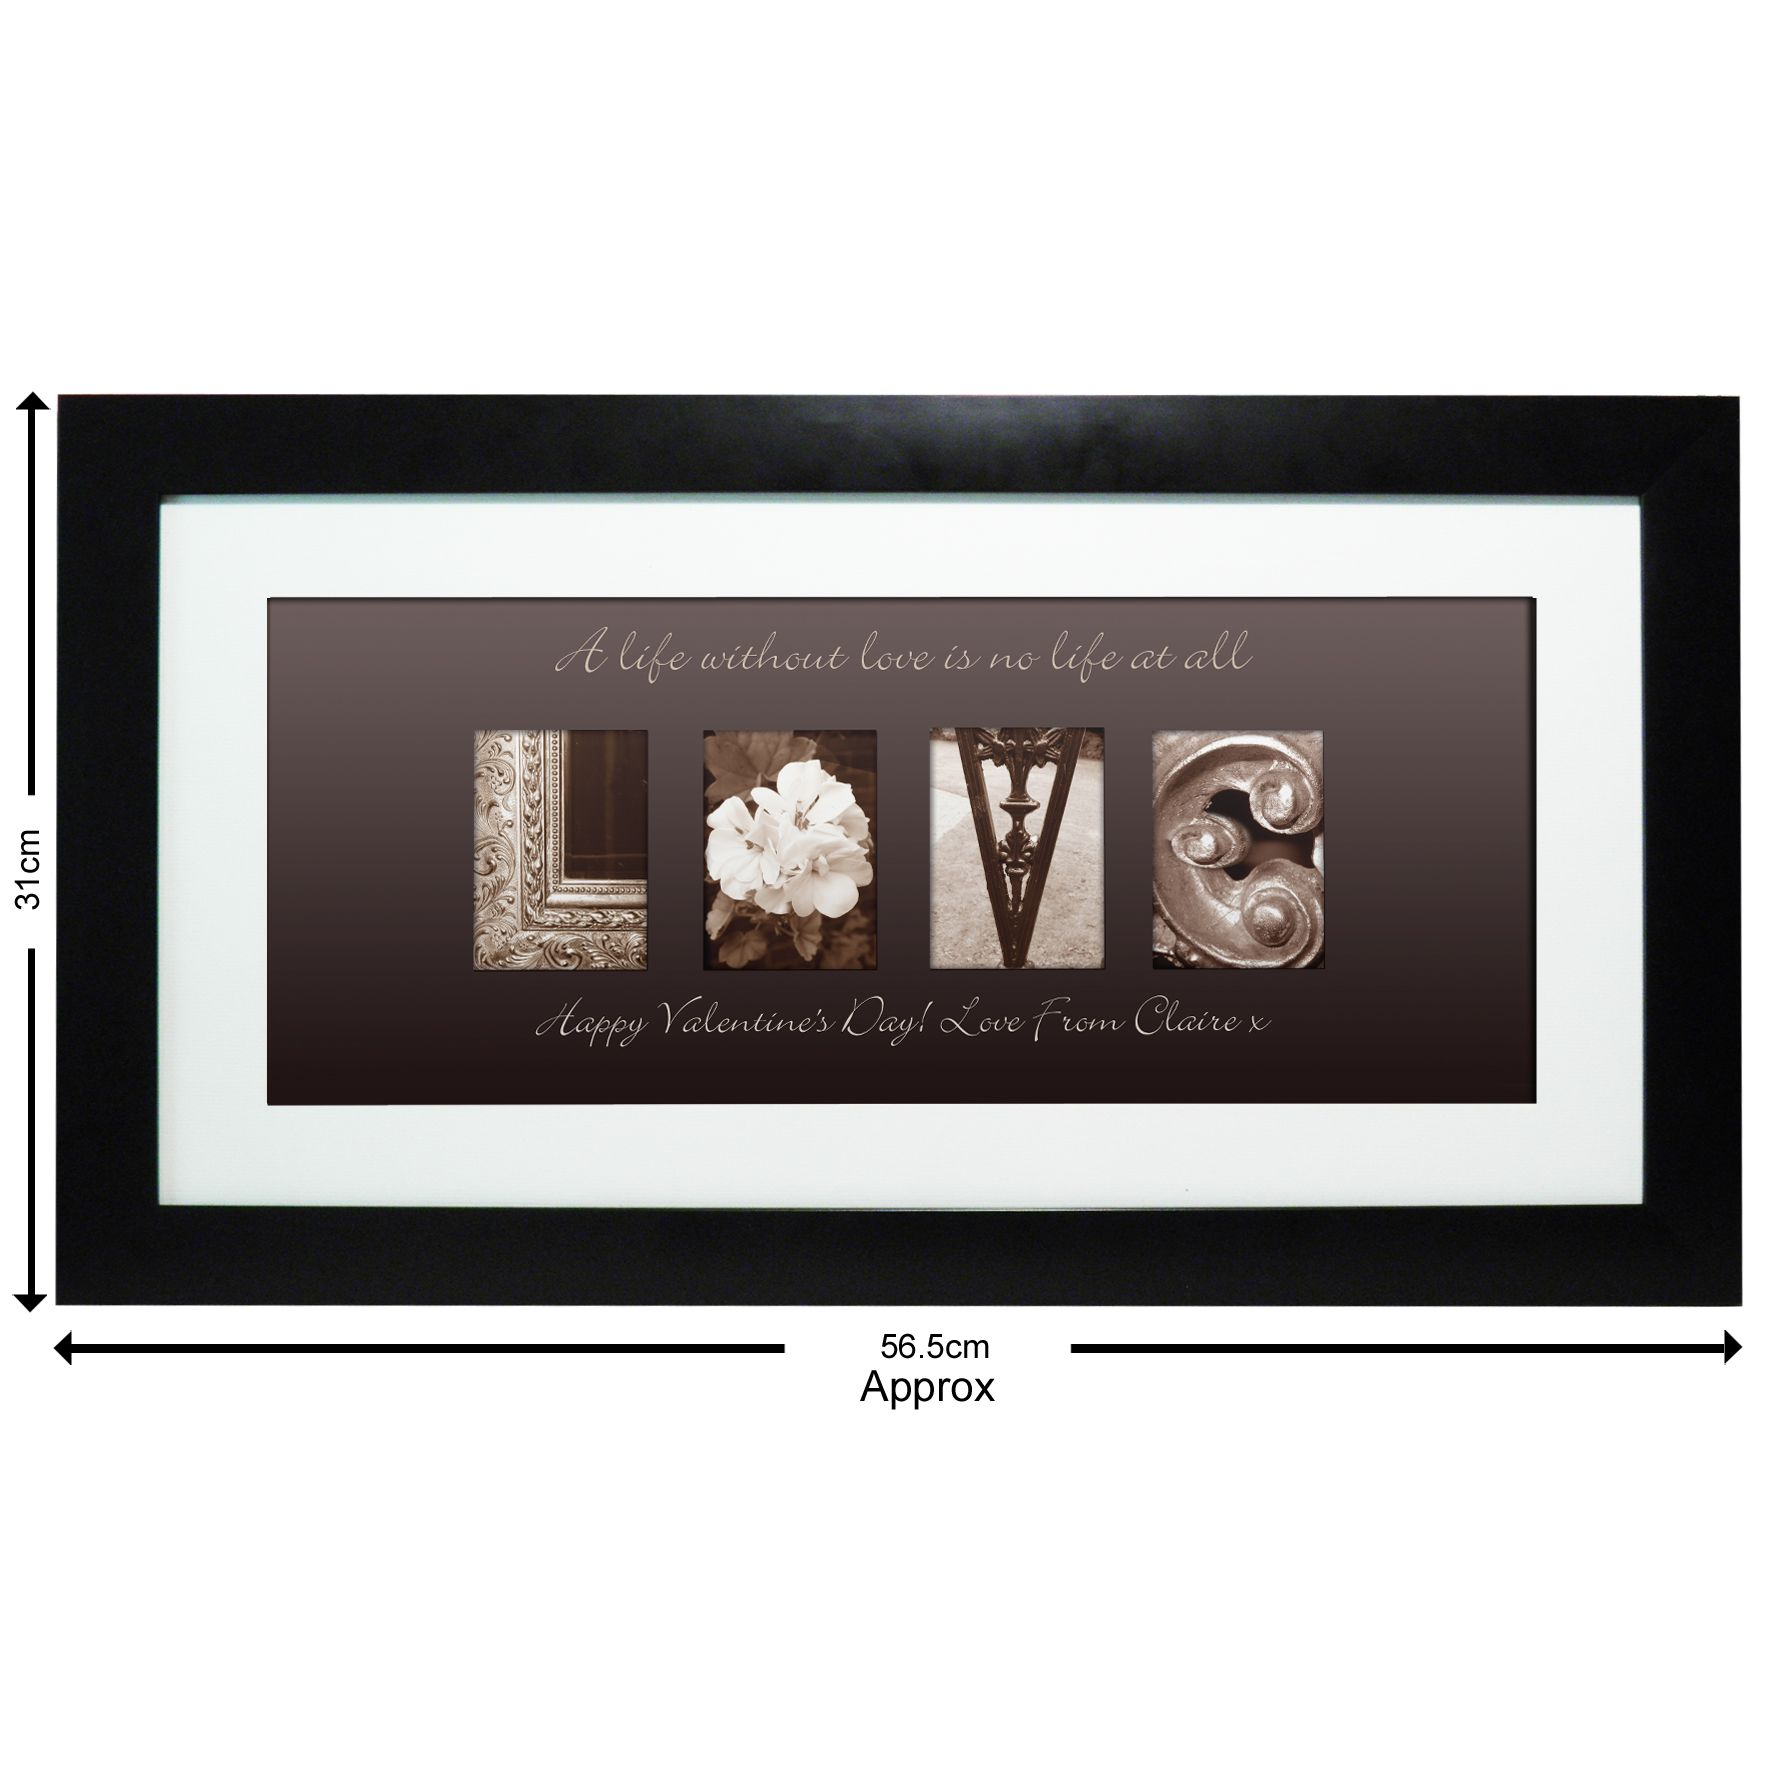 Large Frame Picture Personalised Affection Art Love Large Frame